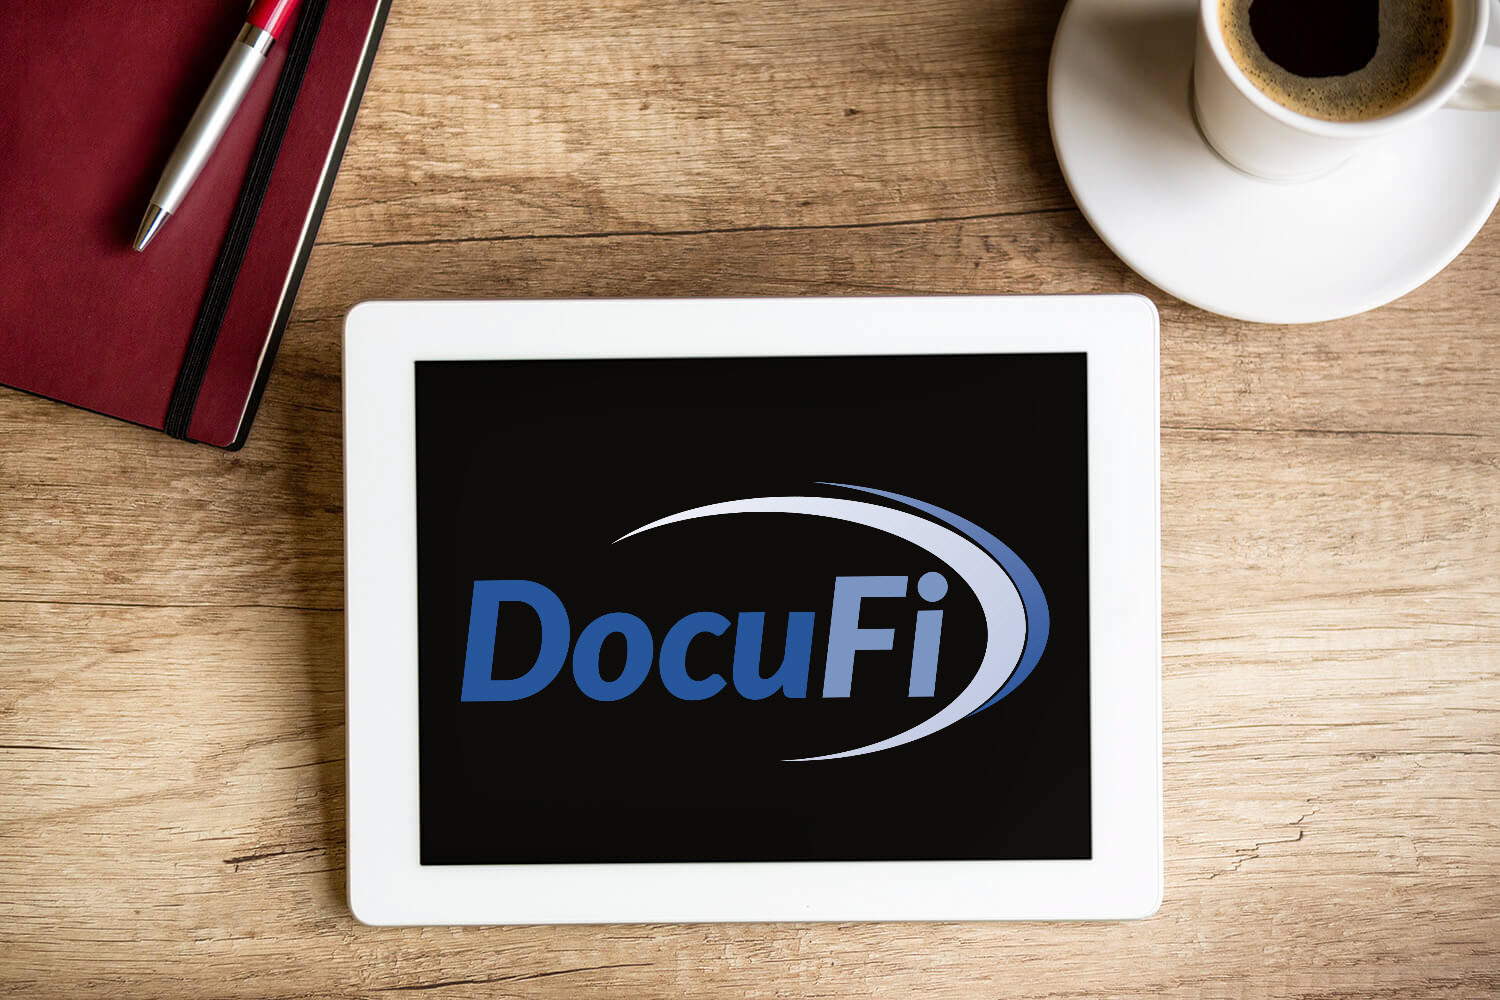 DocuFi makes automated document capture and processing software.